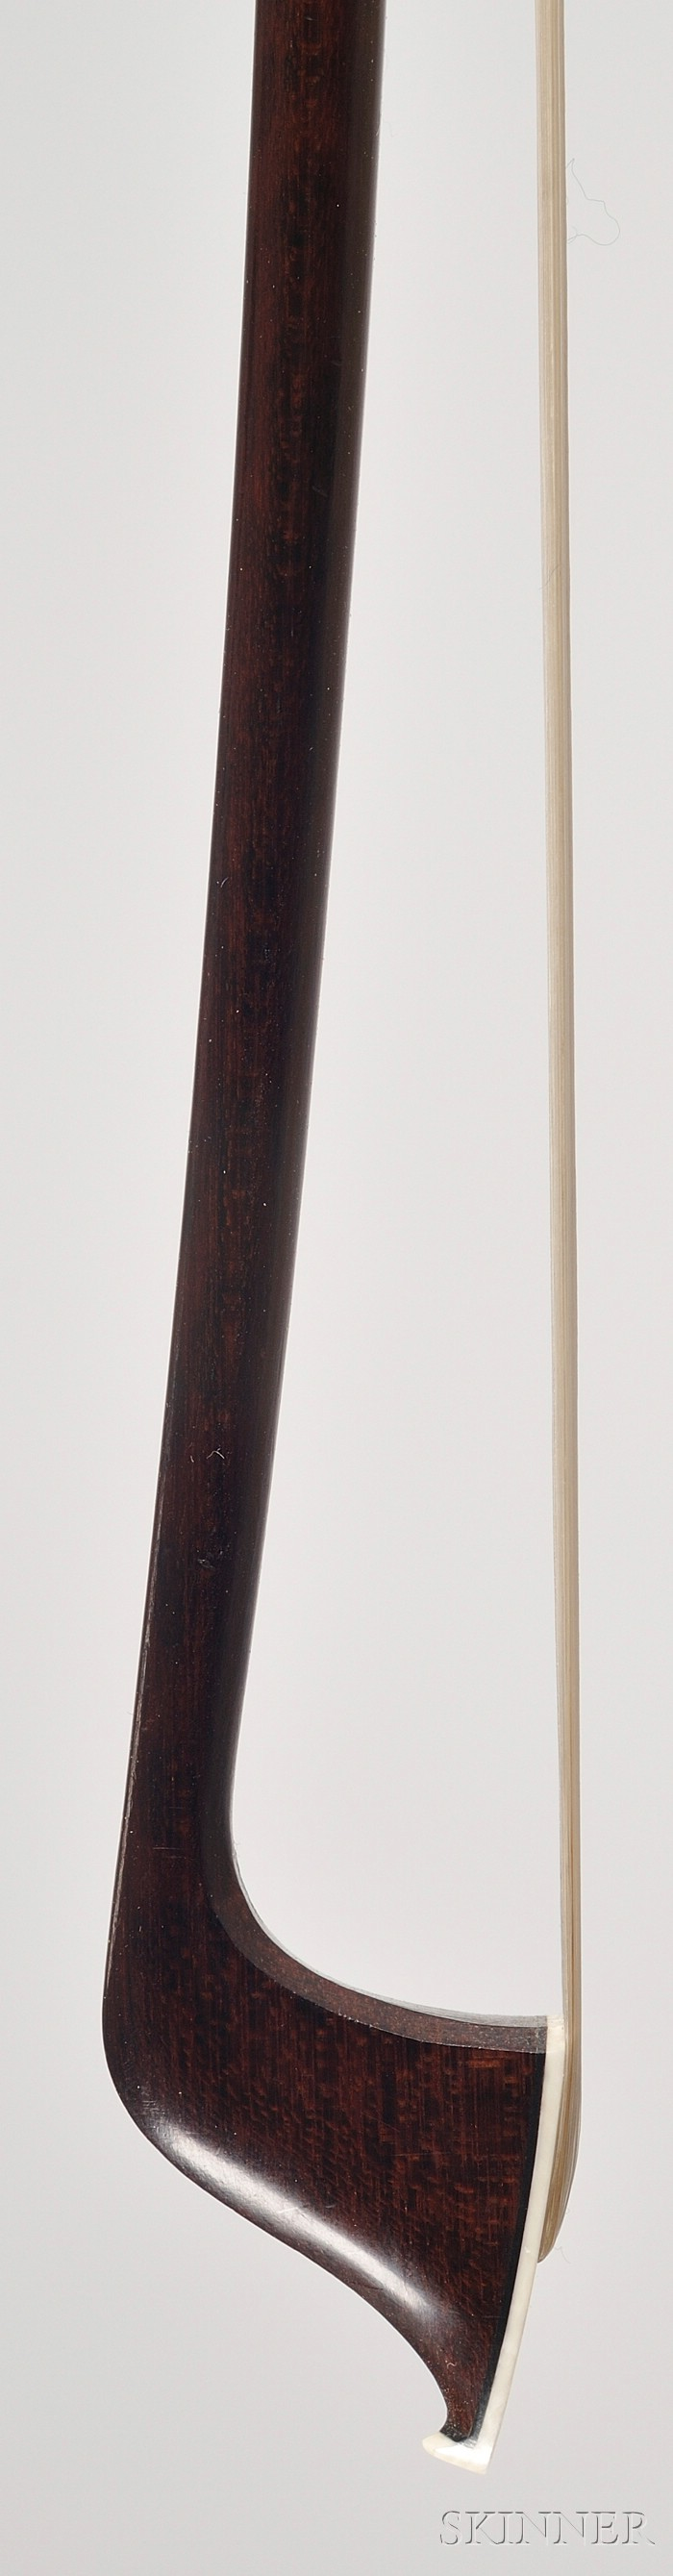 French Nickel Mounted Violoncello Bow, Pierre Cuniot, c. 1870